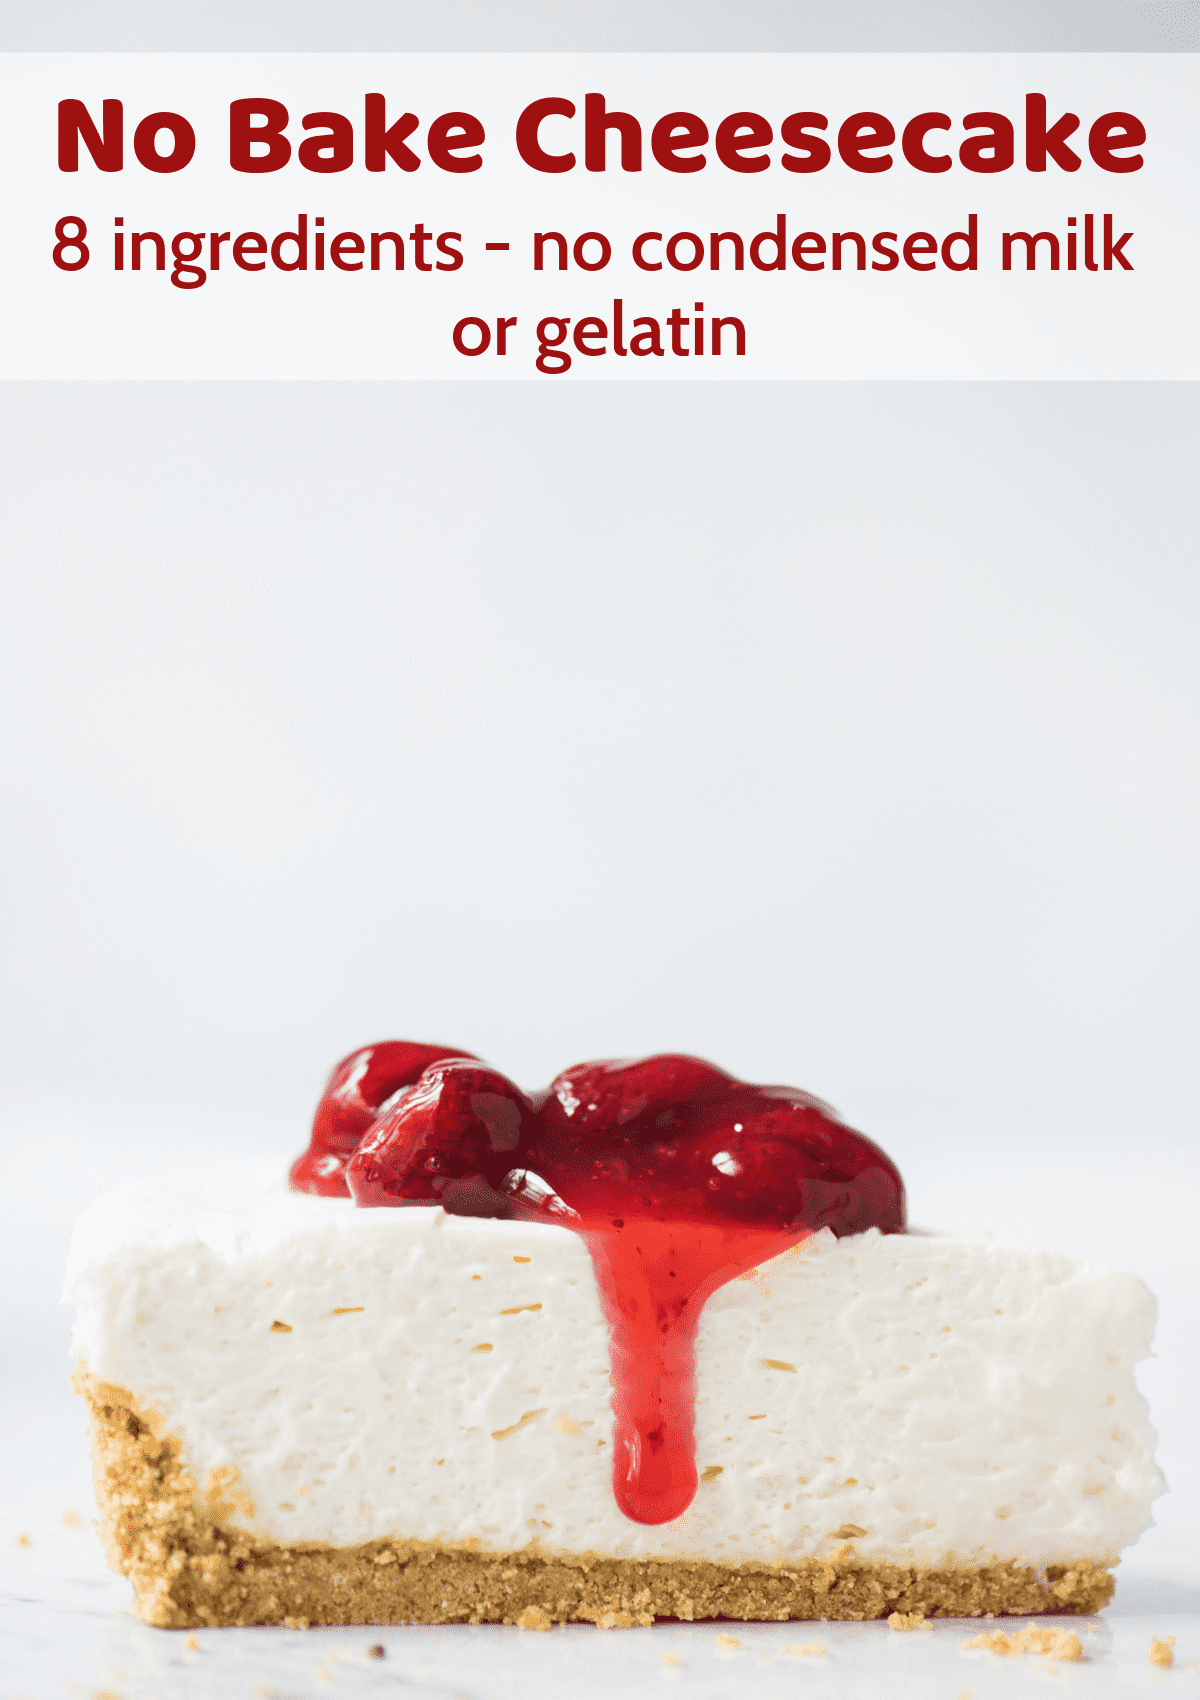 slice of no bake cheesecake with strawberry sauce on white background with text overlay